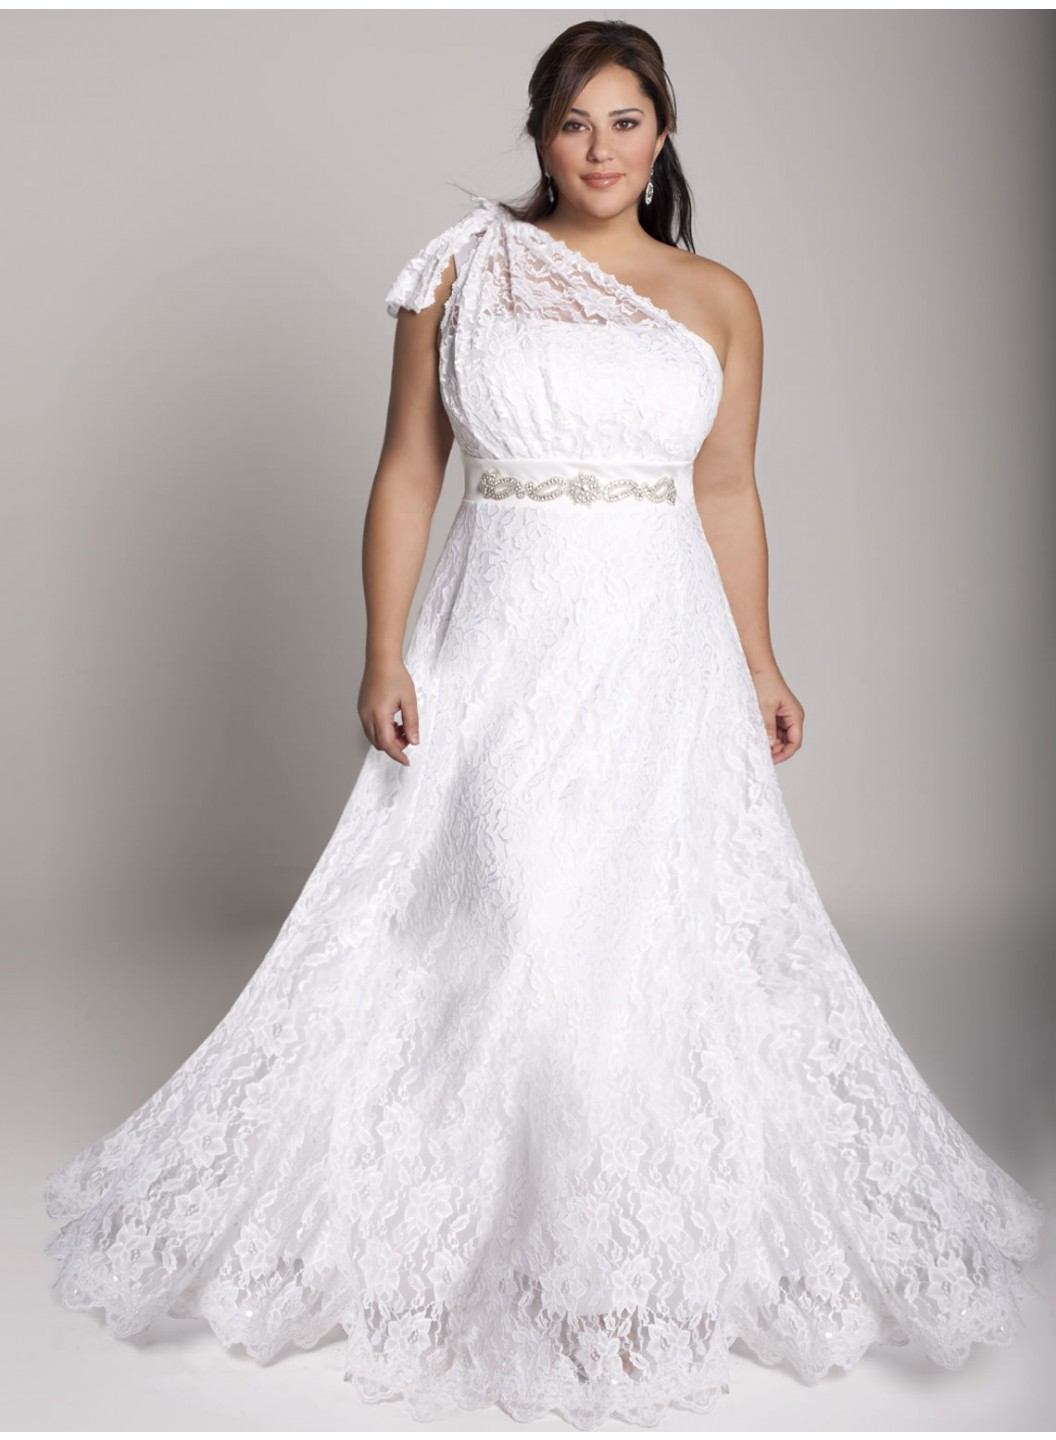 Vintage Wedding Dresses for Plus Size